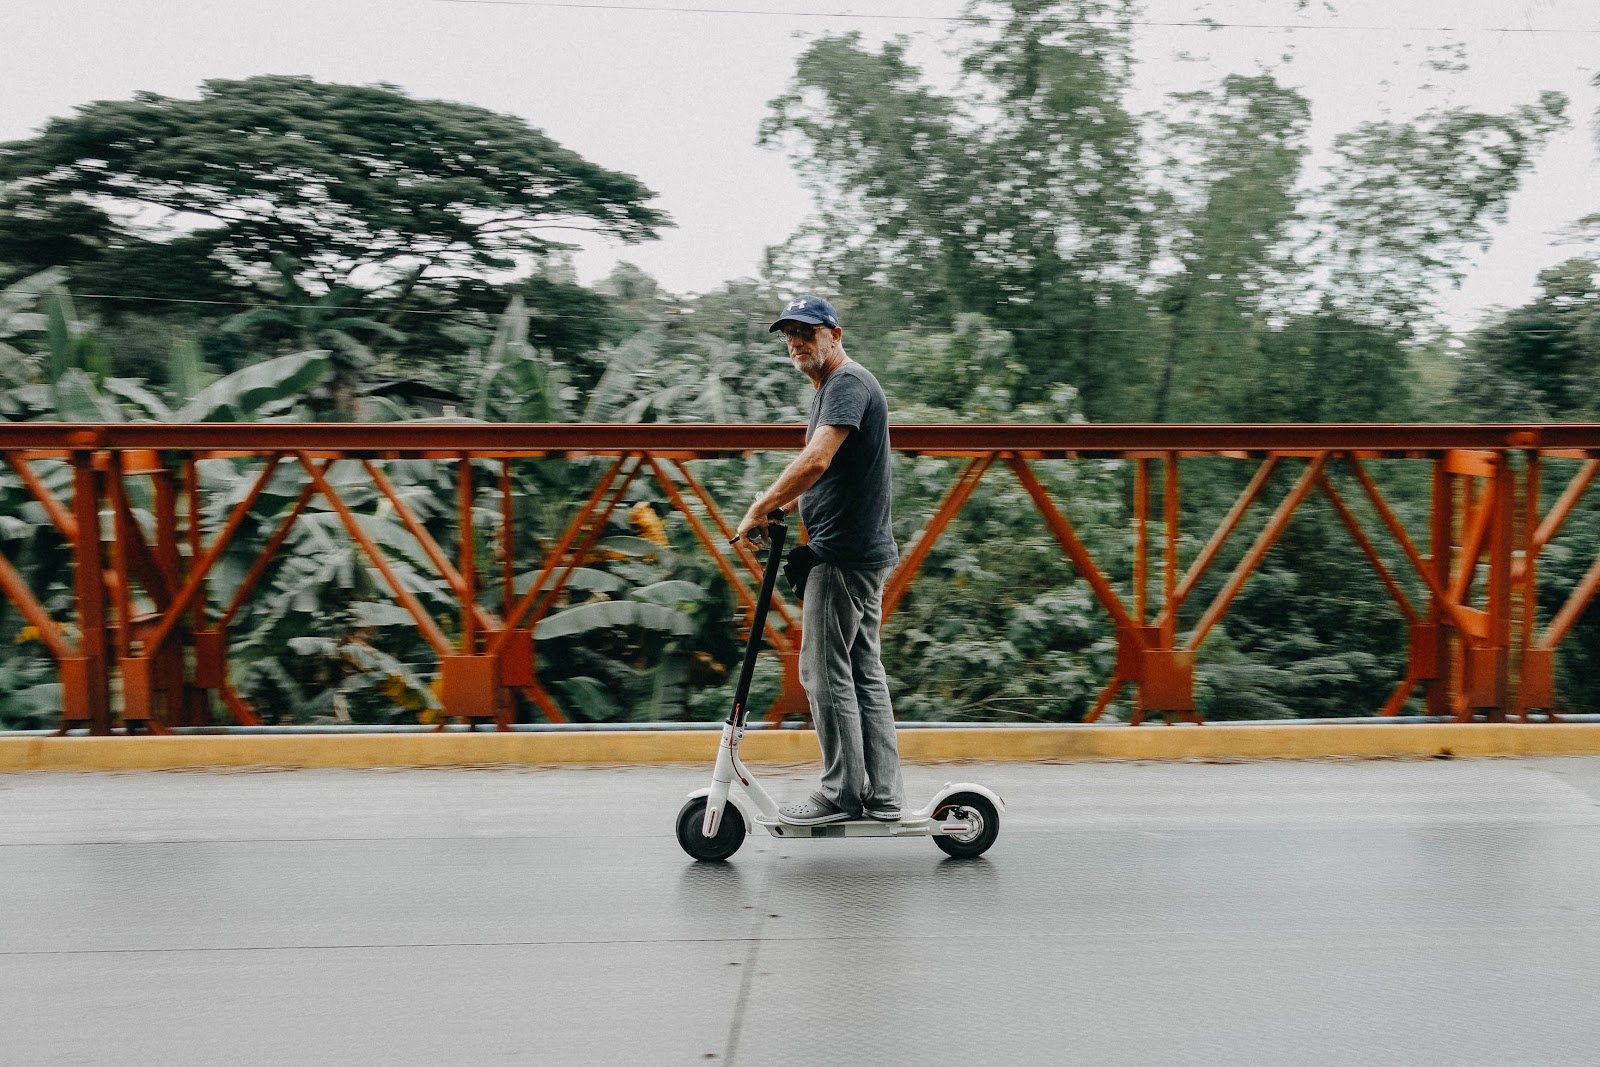 Electric Scooter - Trending Product To sell in 2021